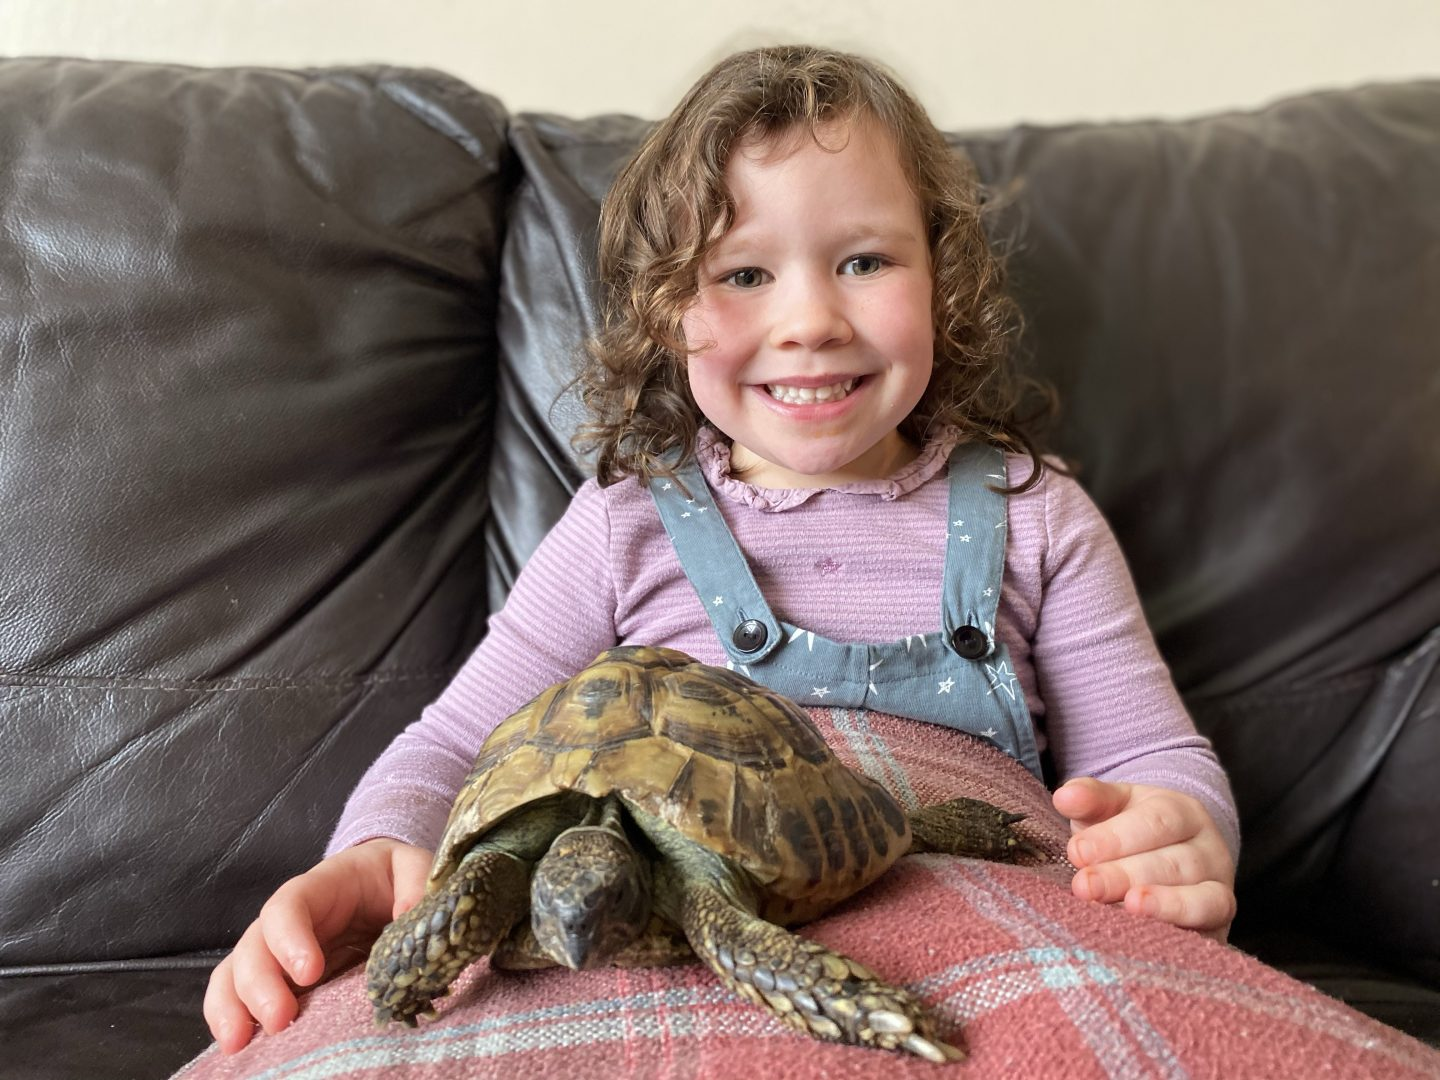 A tortoise sitting o a child's lap before he goes into hibernation